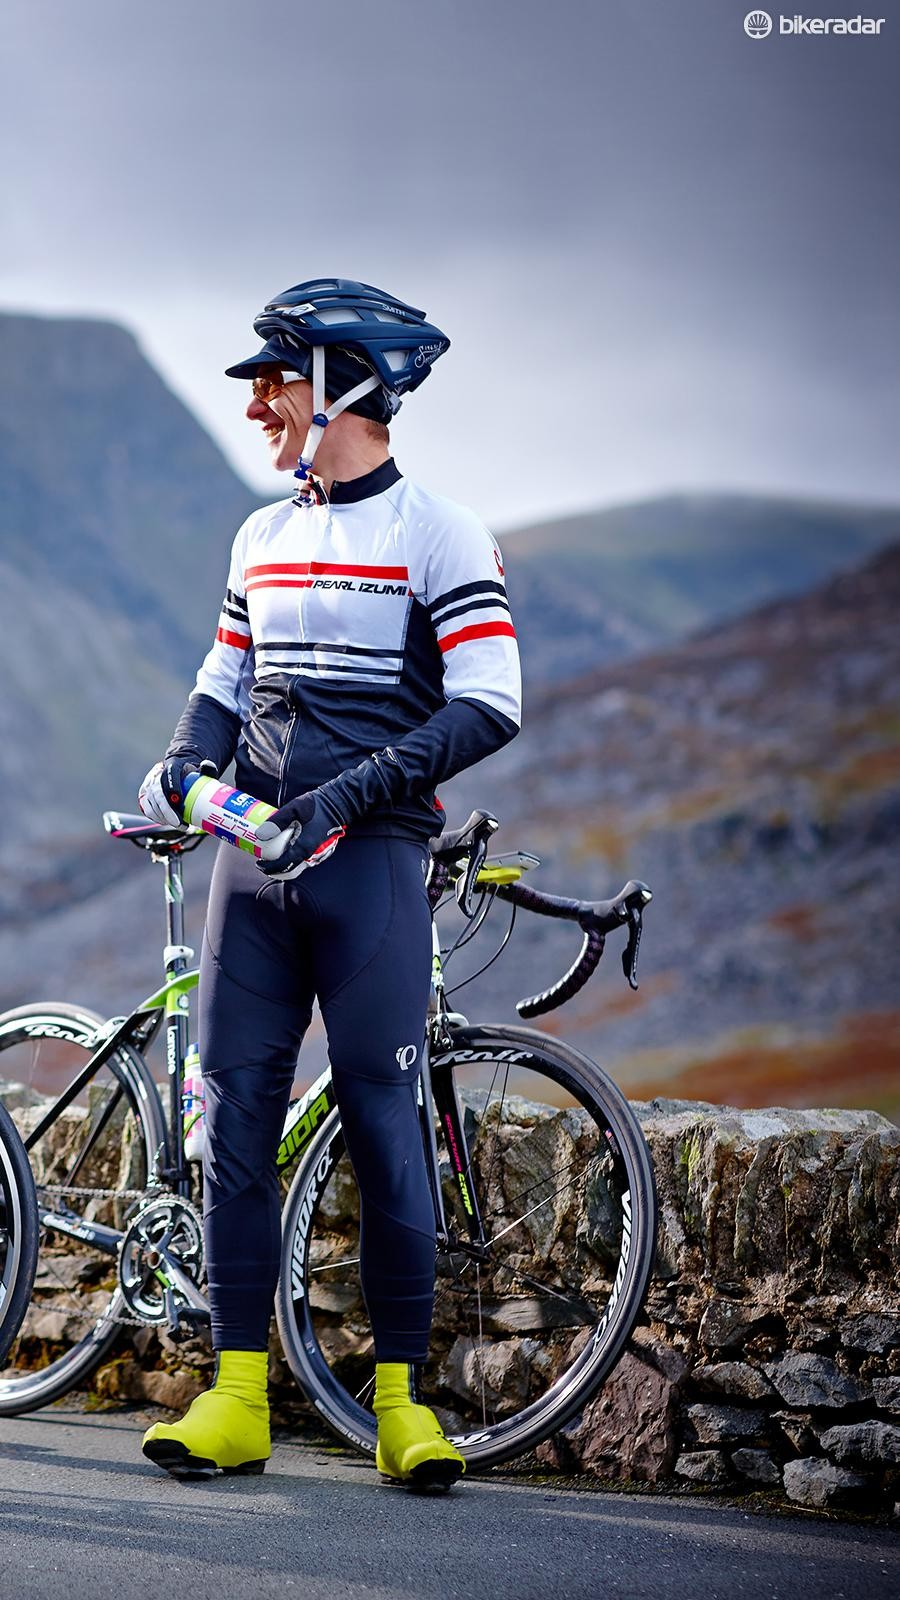 The jersey is good value, but not one for colder days. The windstopping properties of the bibs were definitely appreciated